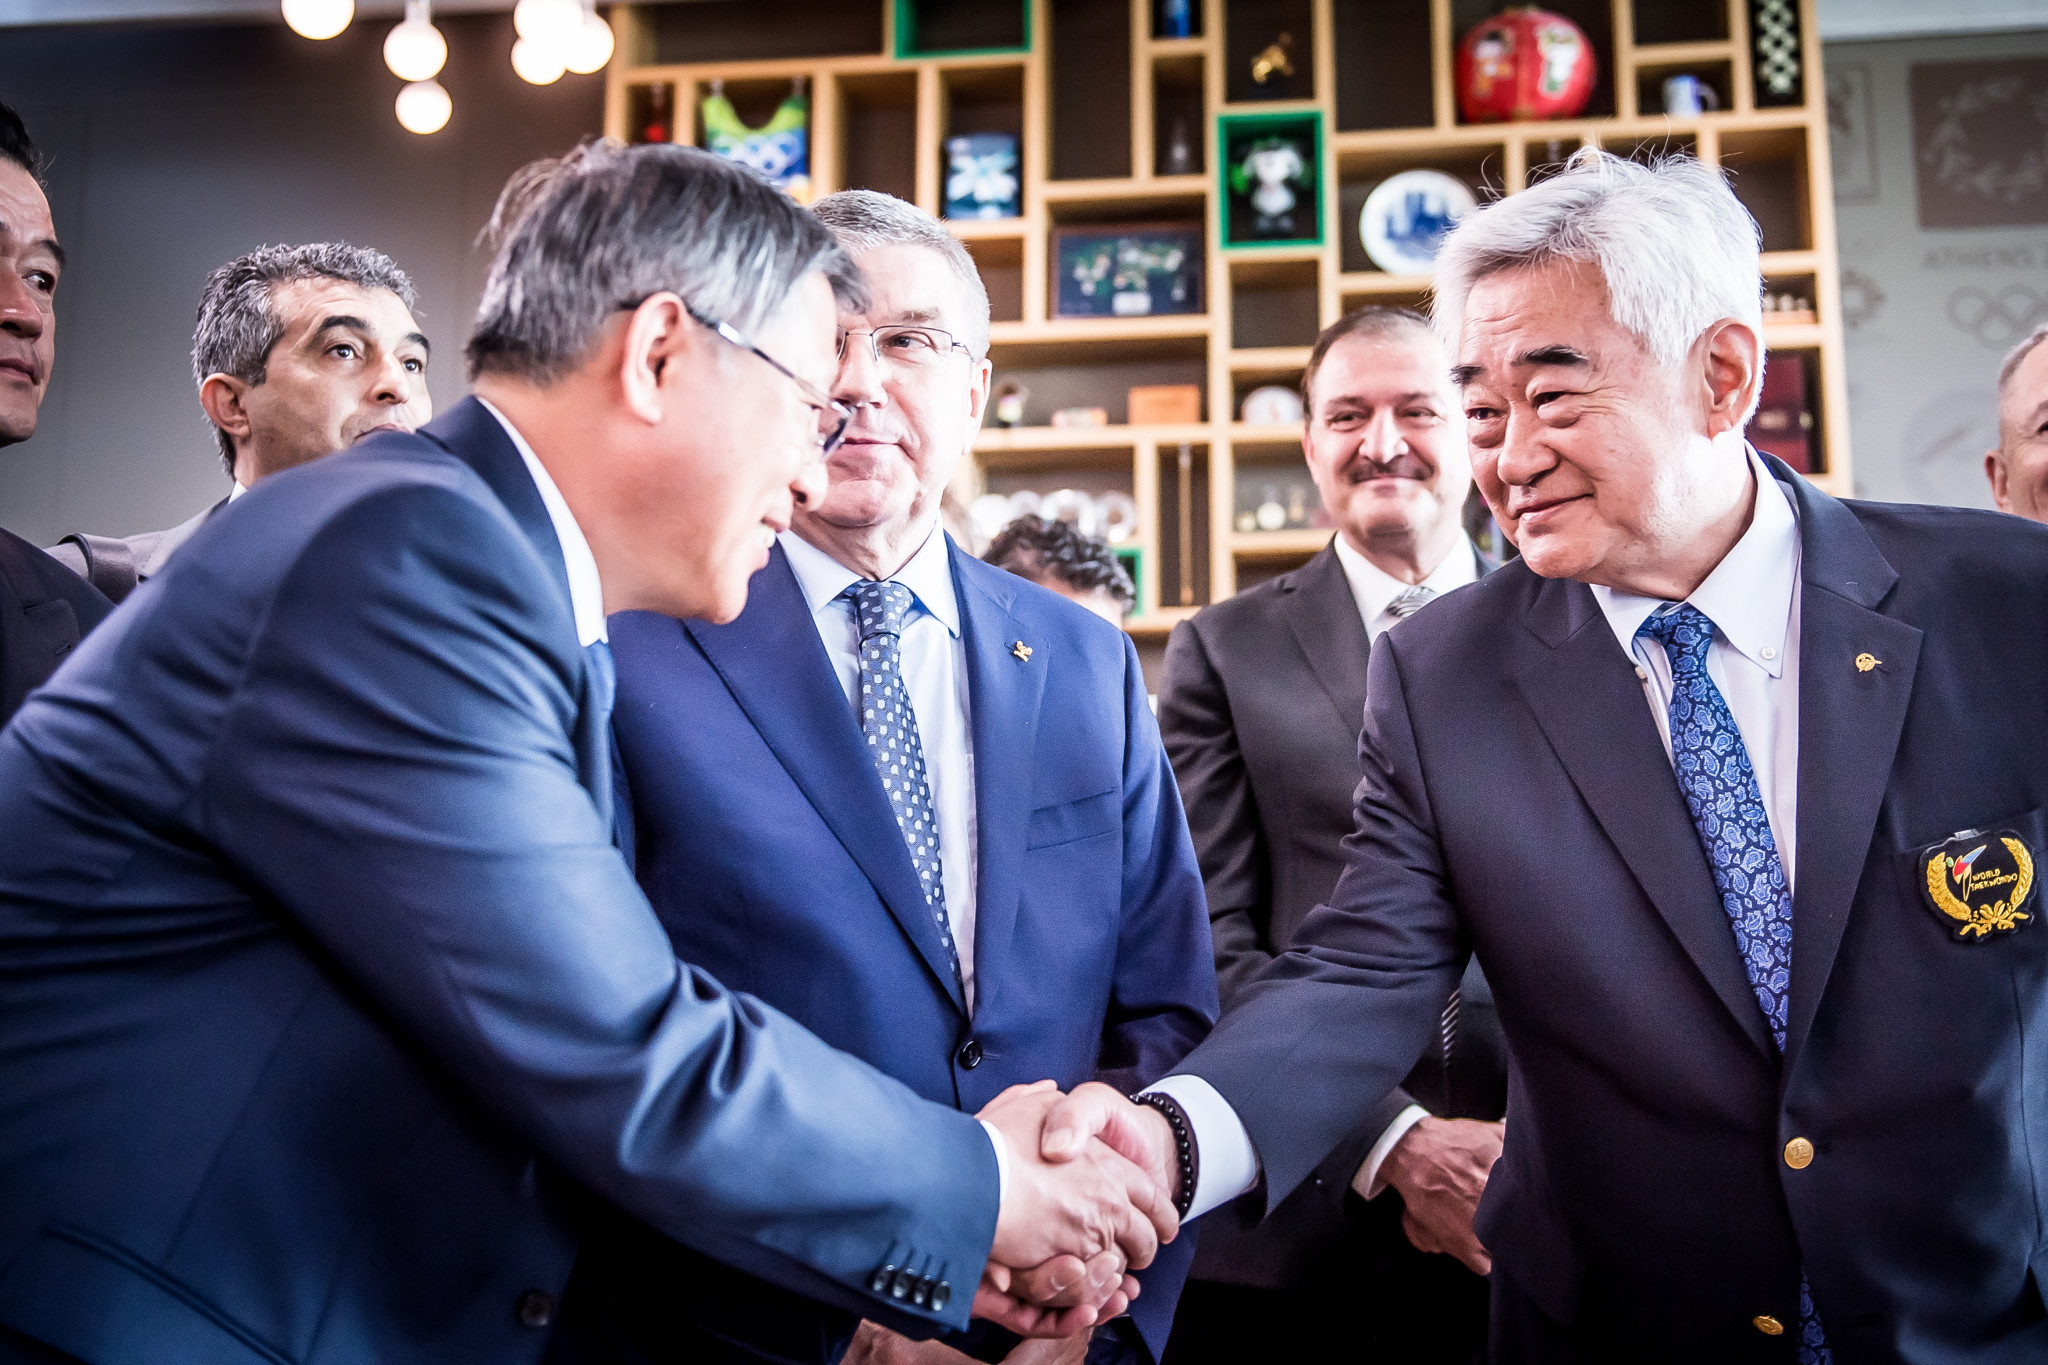 WT President Choue Chung-won and ITF President Ri Yong-son were in attendance at the joint demonstration at the Olympic Museum in Lausanne ©World Taekwondo